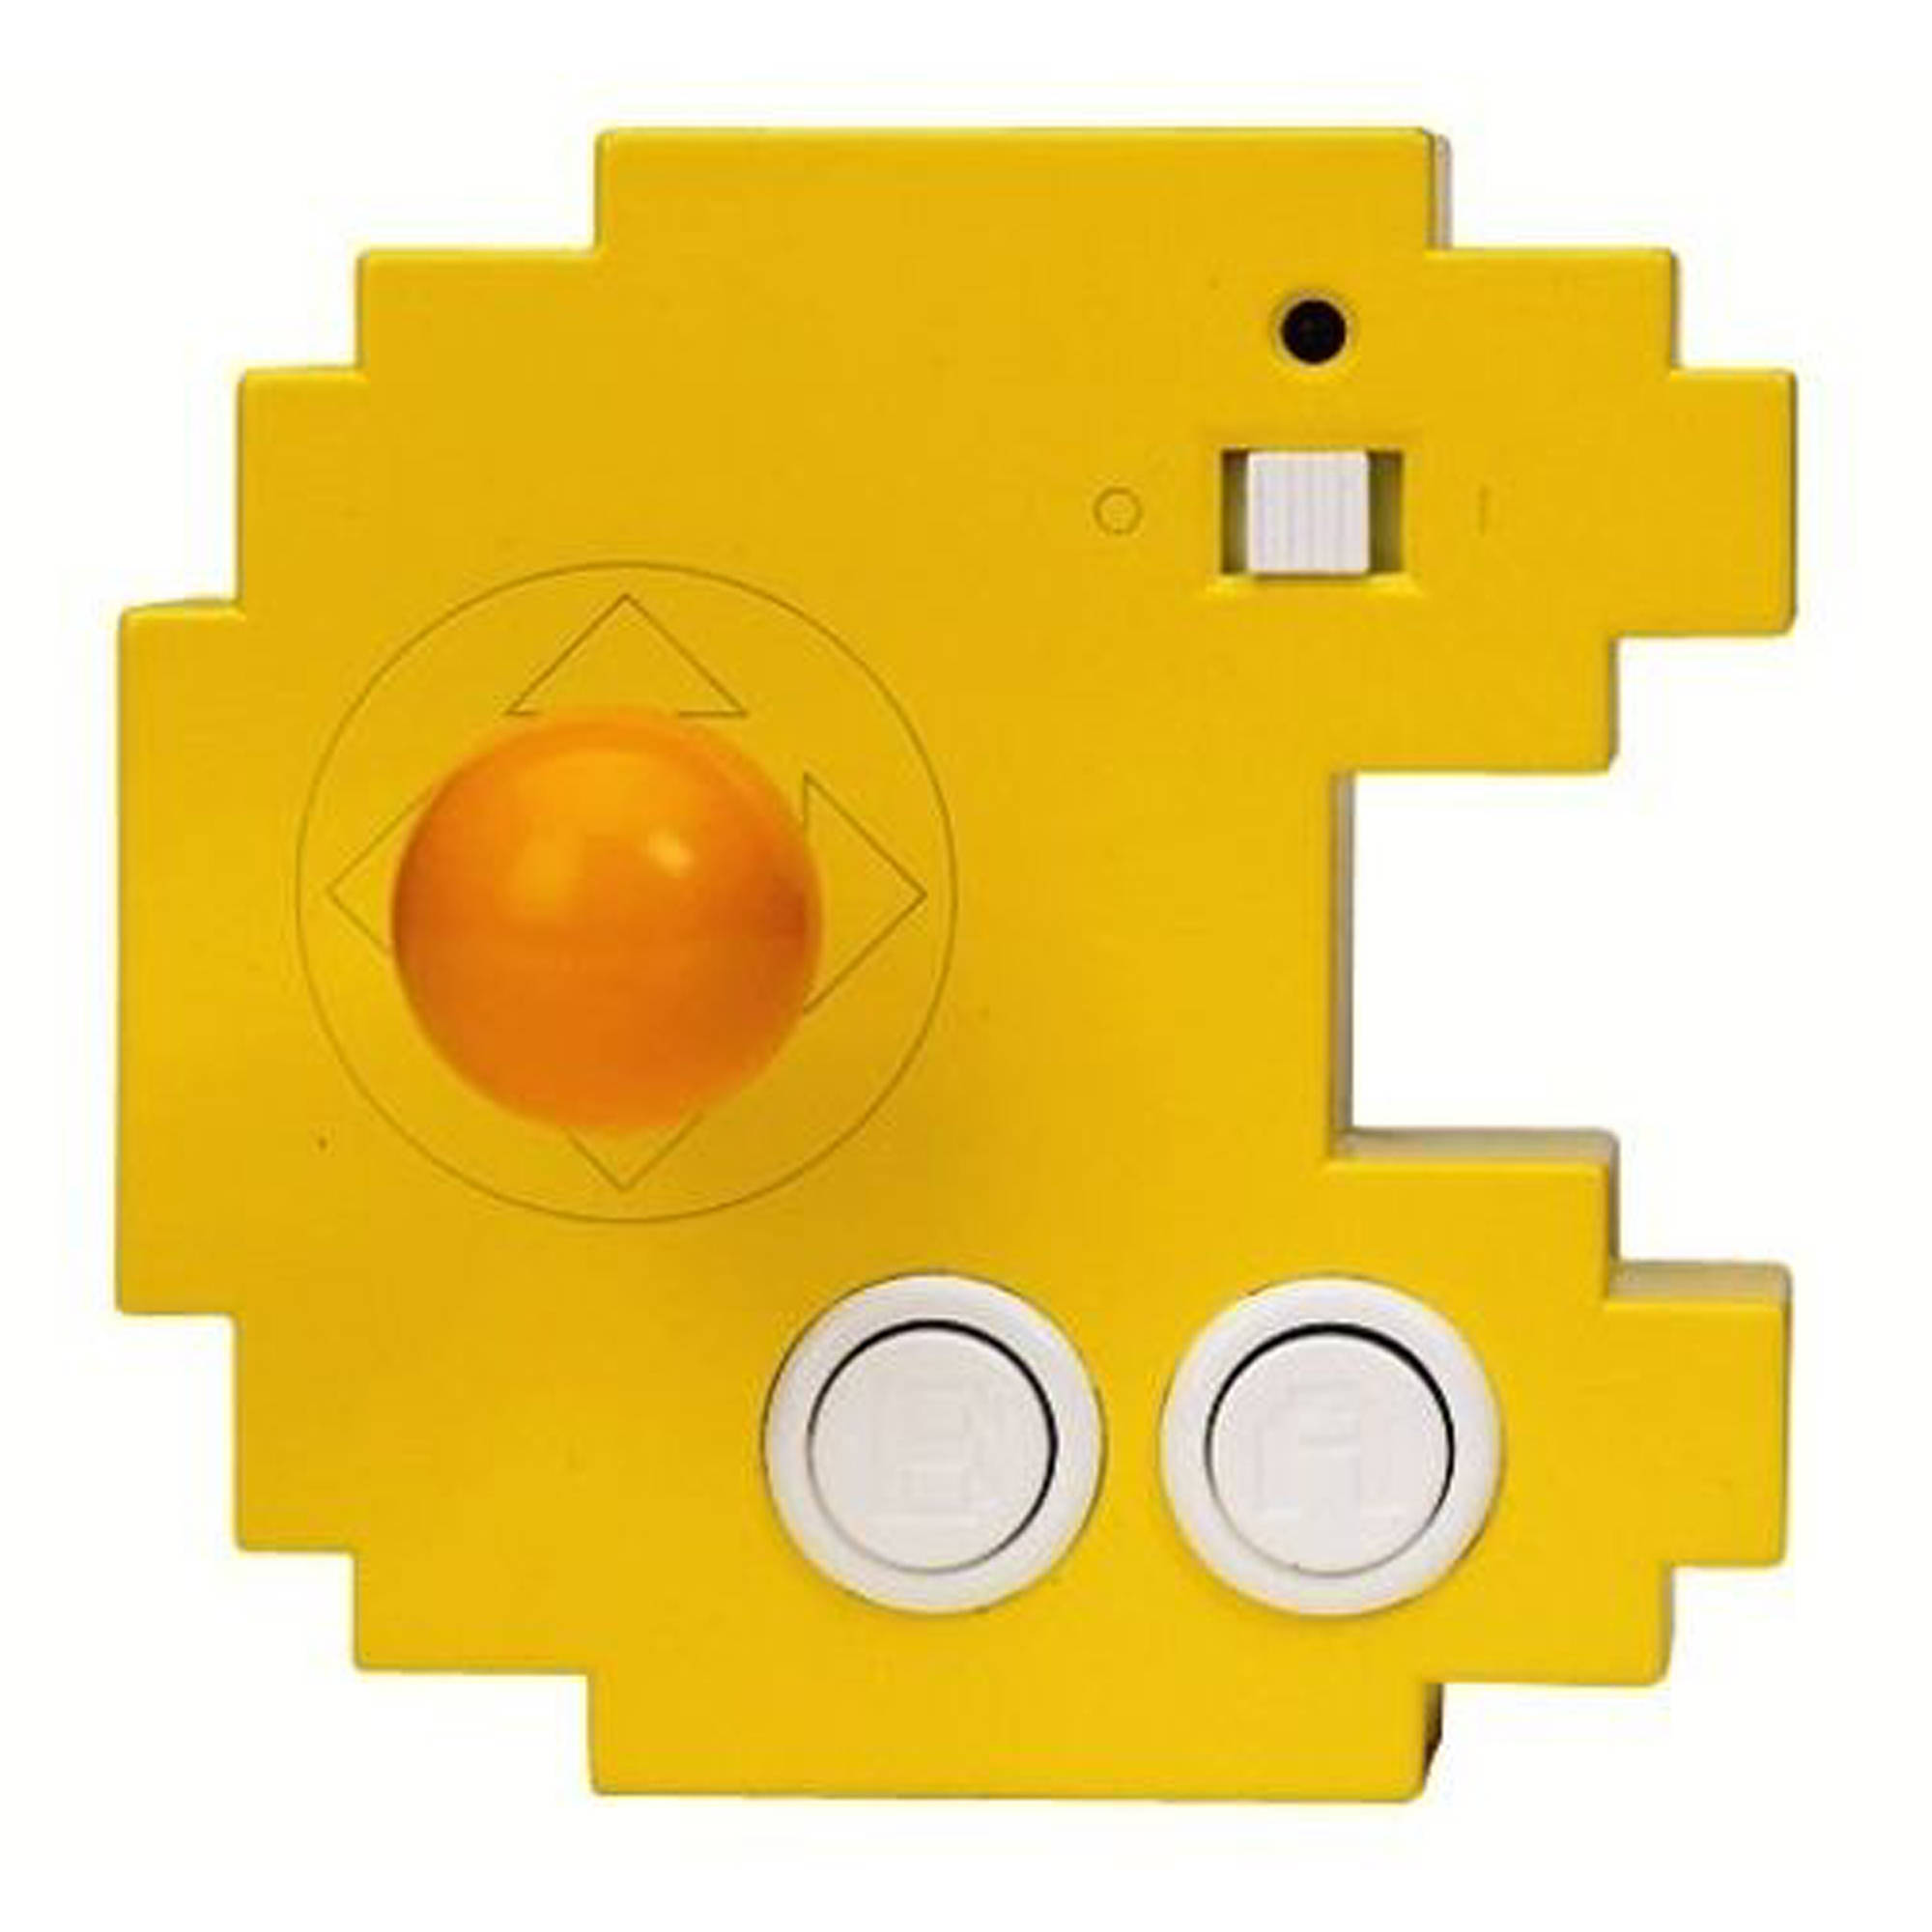 pacman plug and play is a great valentines day gift for a gamer